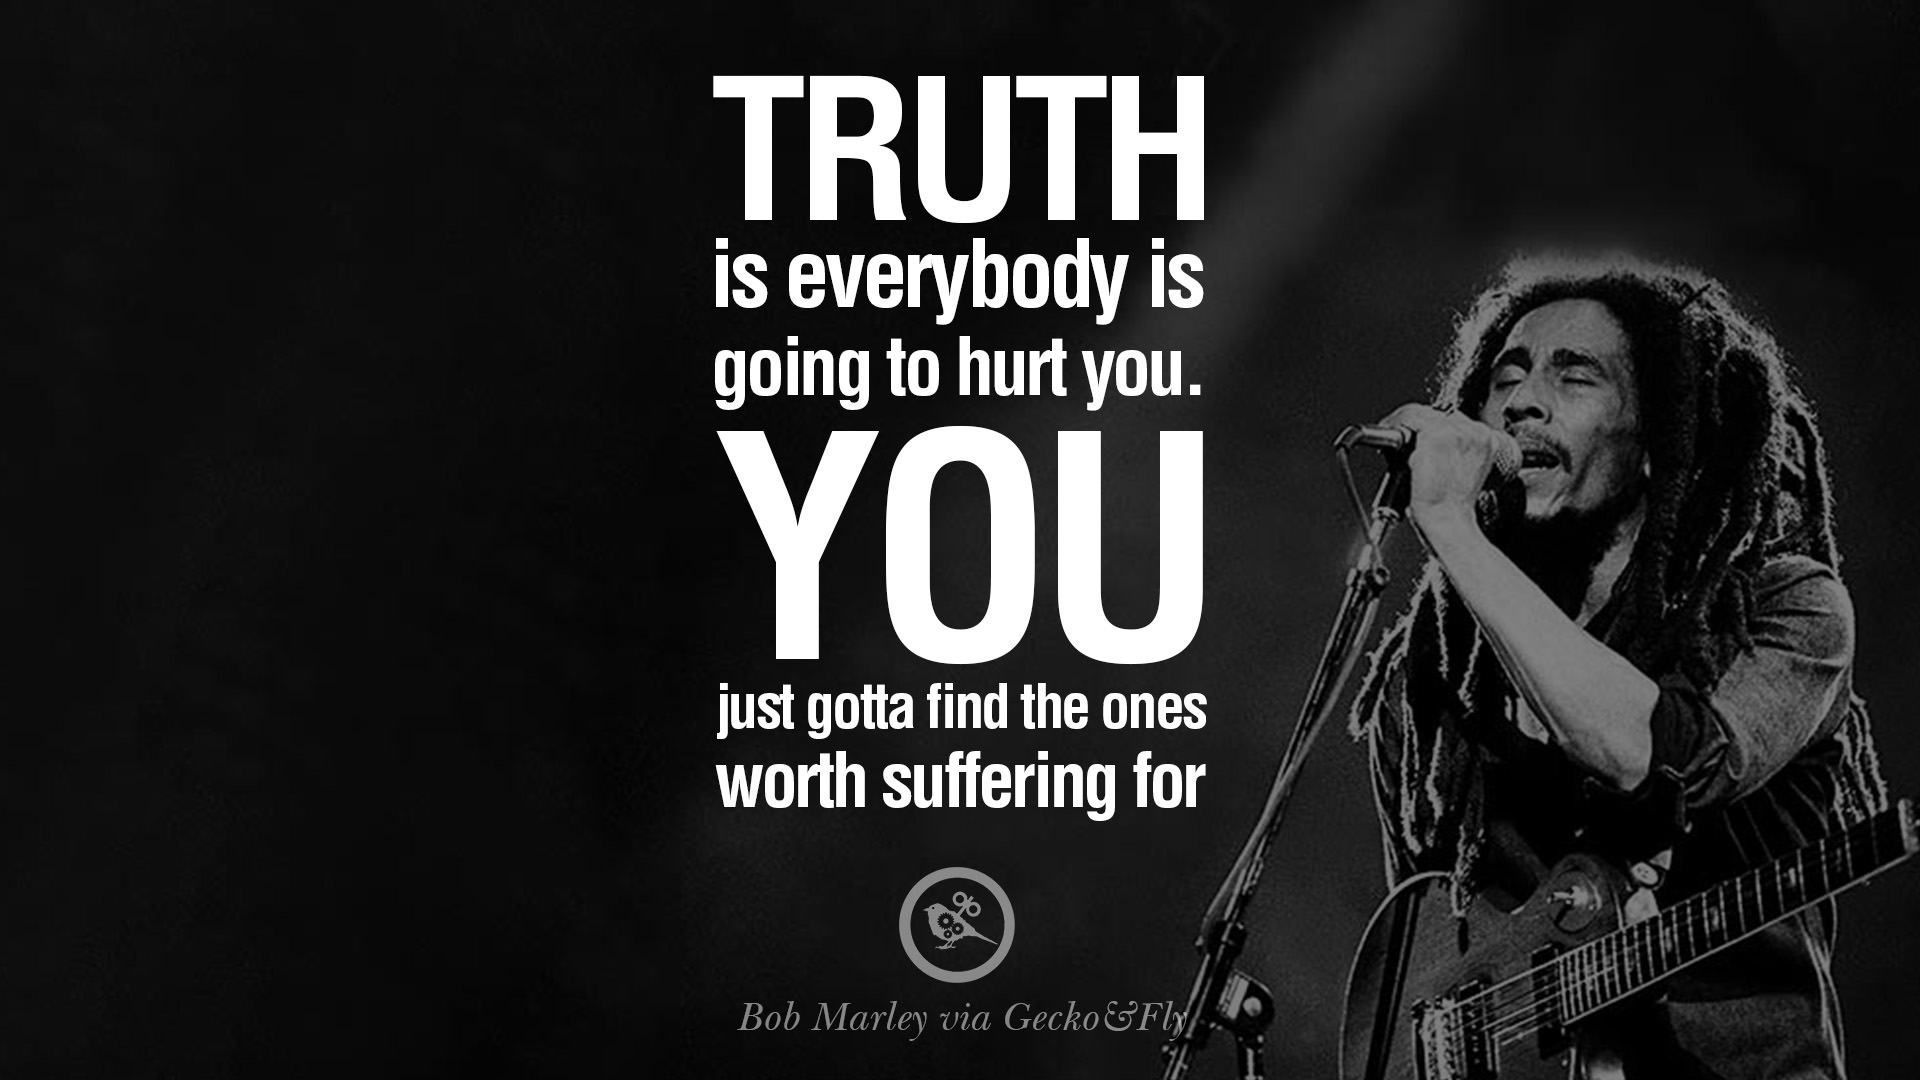 10 Bob Marley Quotes And Frases On Marijuana Mentality And Truth